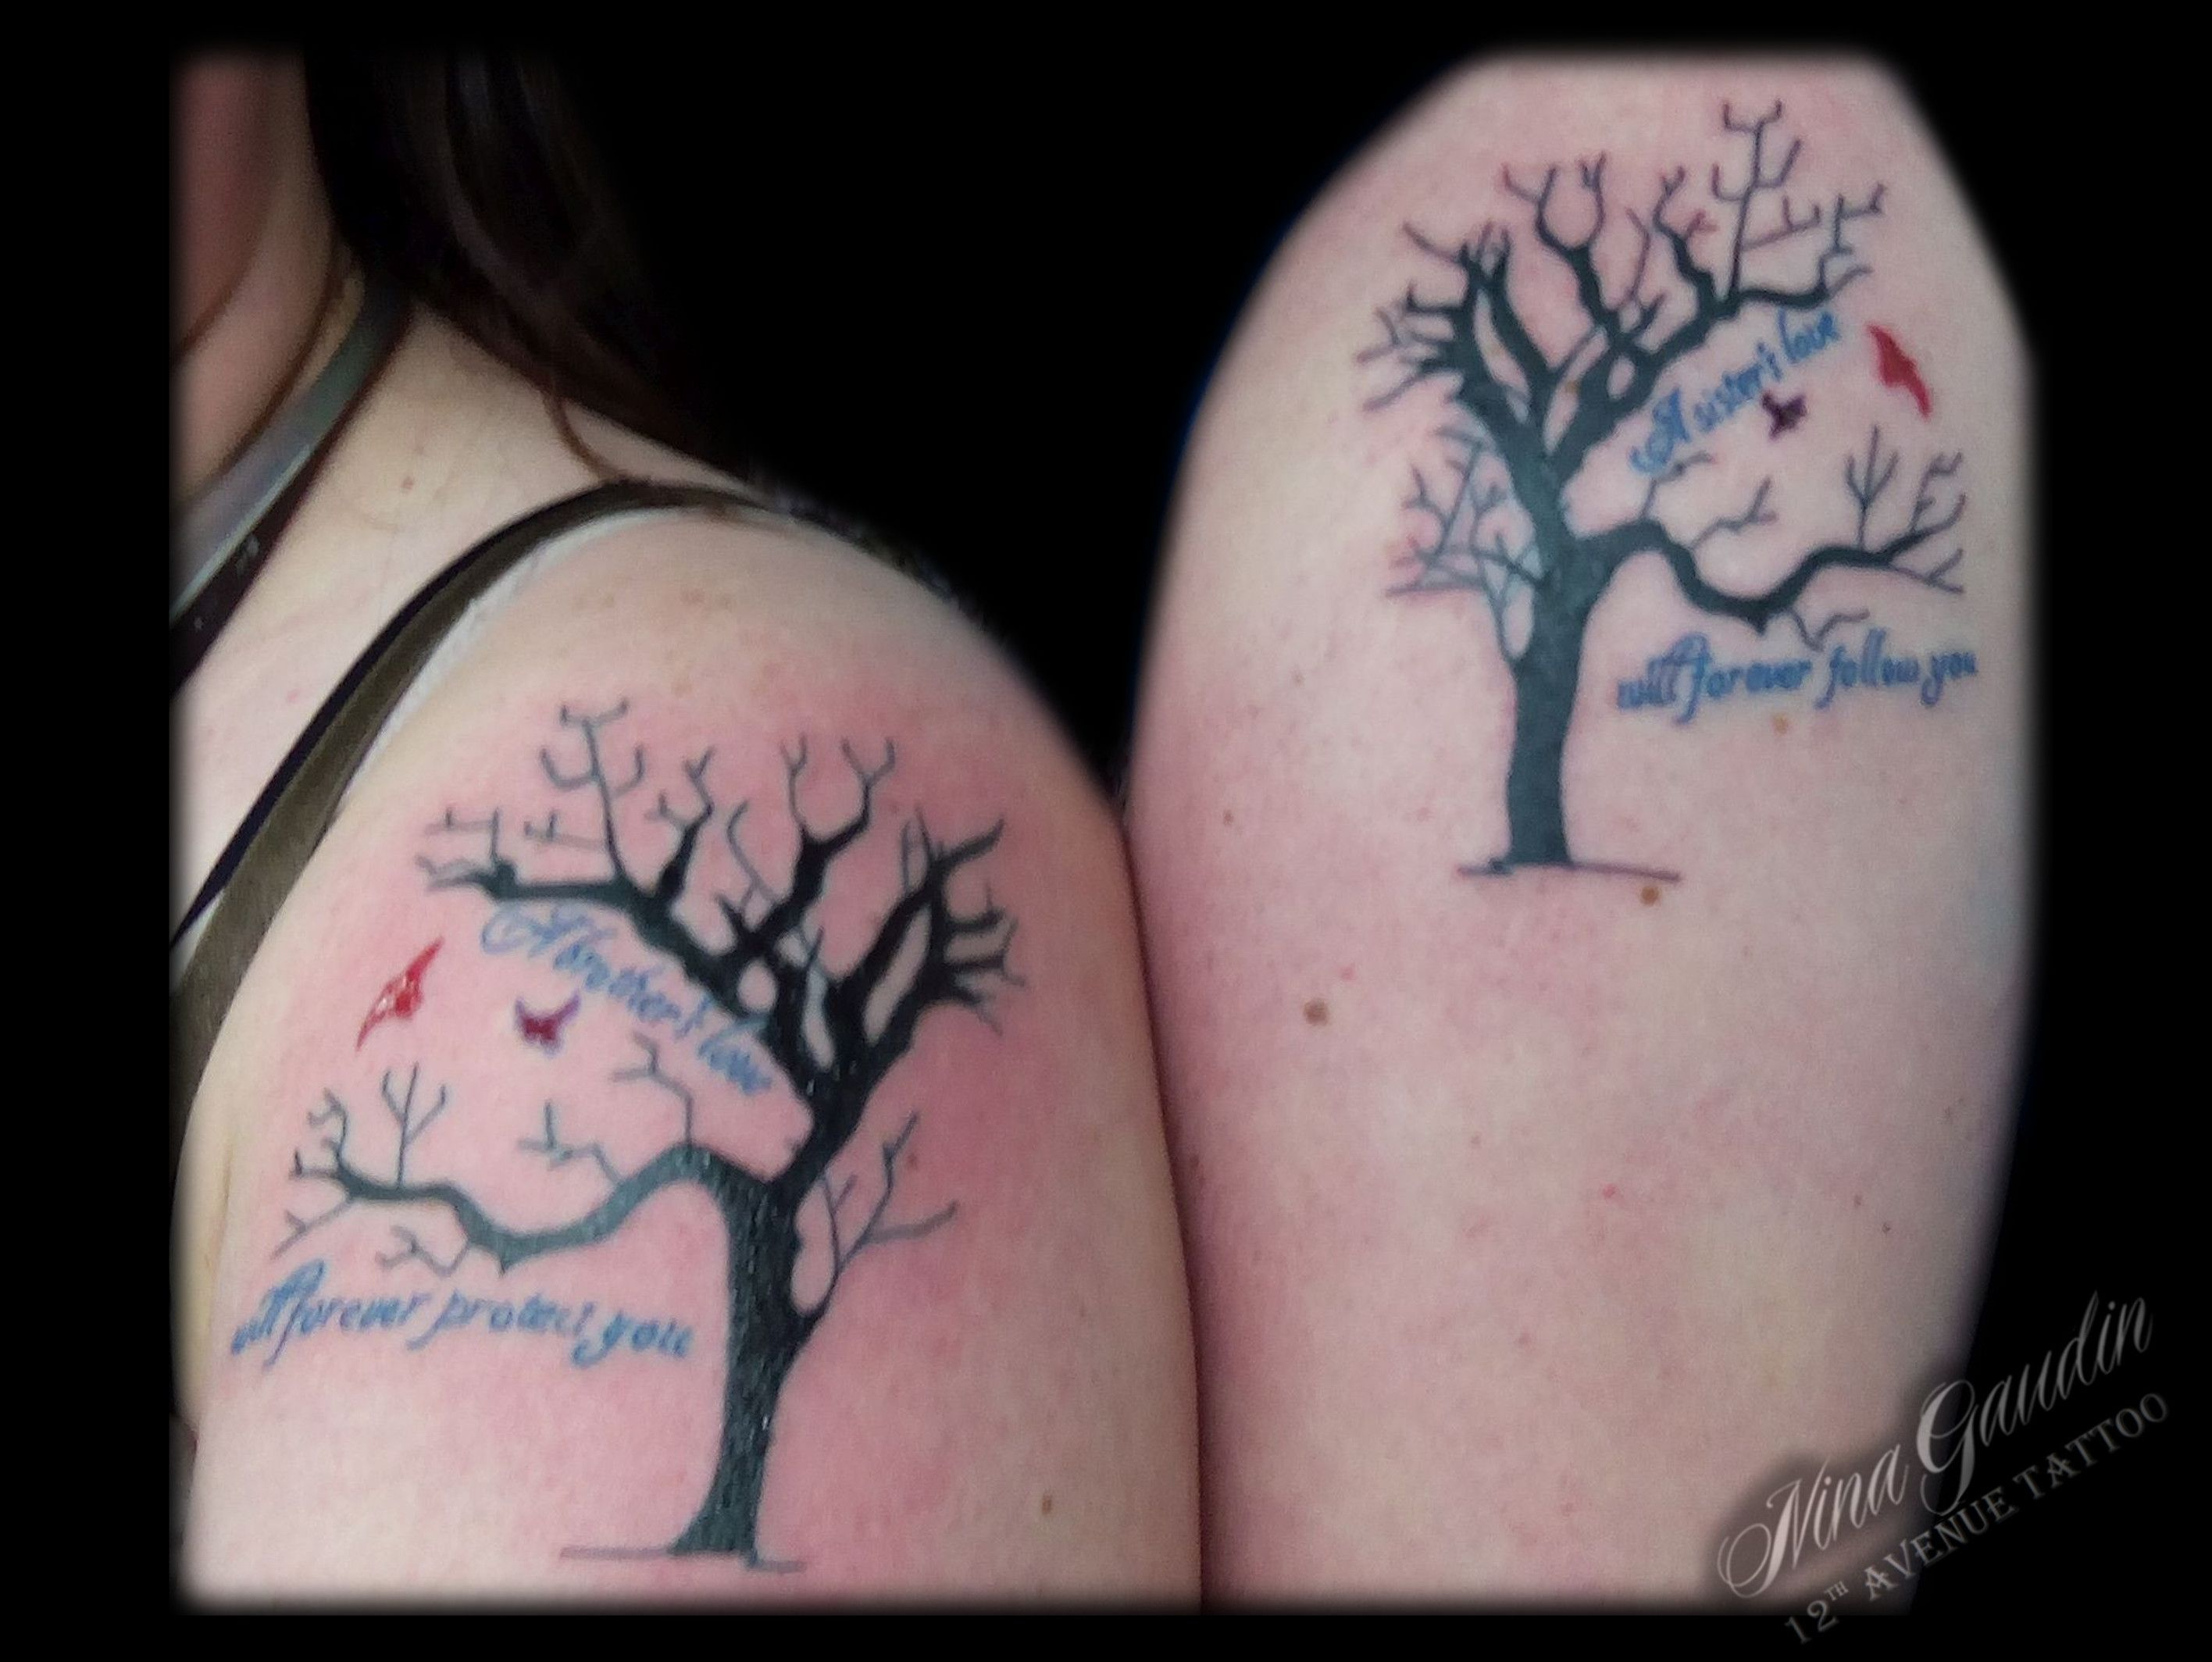 Brother Sister Tribute Family Tree Matching Black With Color Arm Arms Shoulder Tattoos By Nina Gaudin Of 12th Avenue Tat Tattoo Work Tattoos Shoulder Tattoos